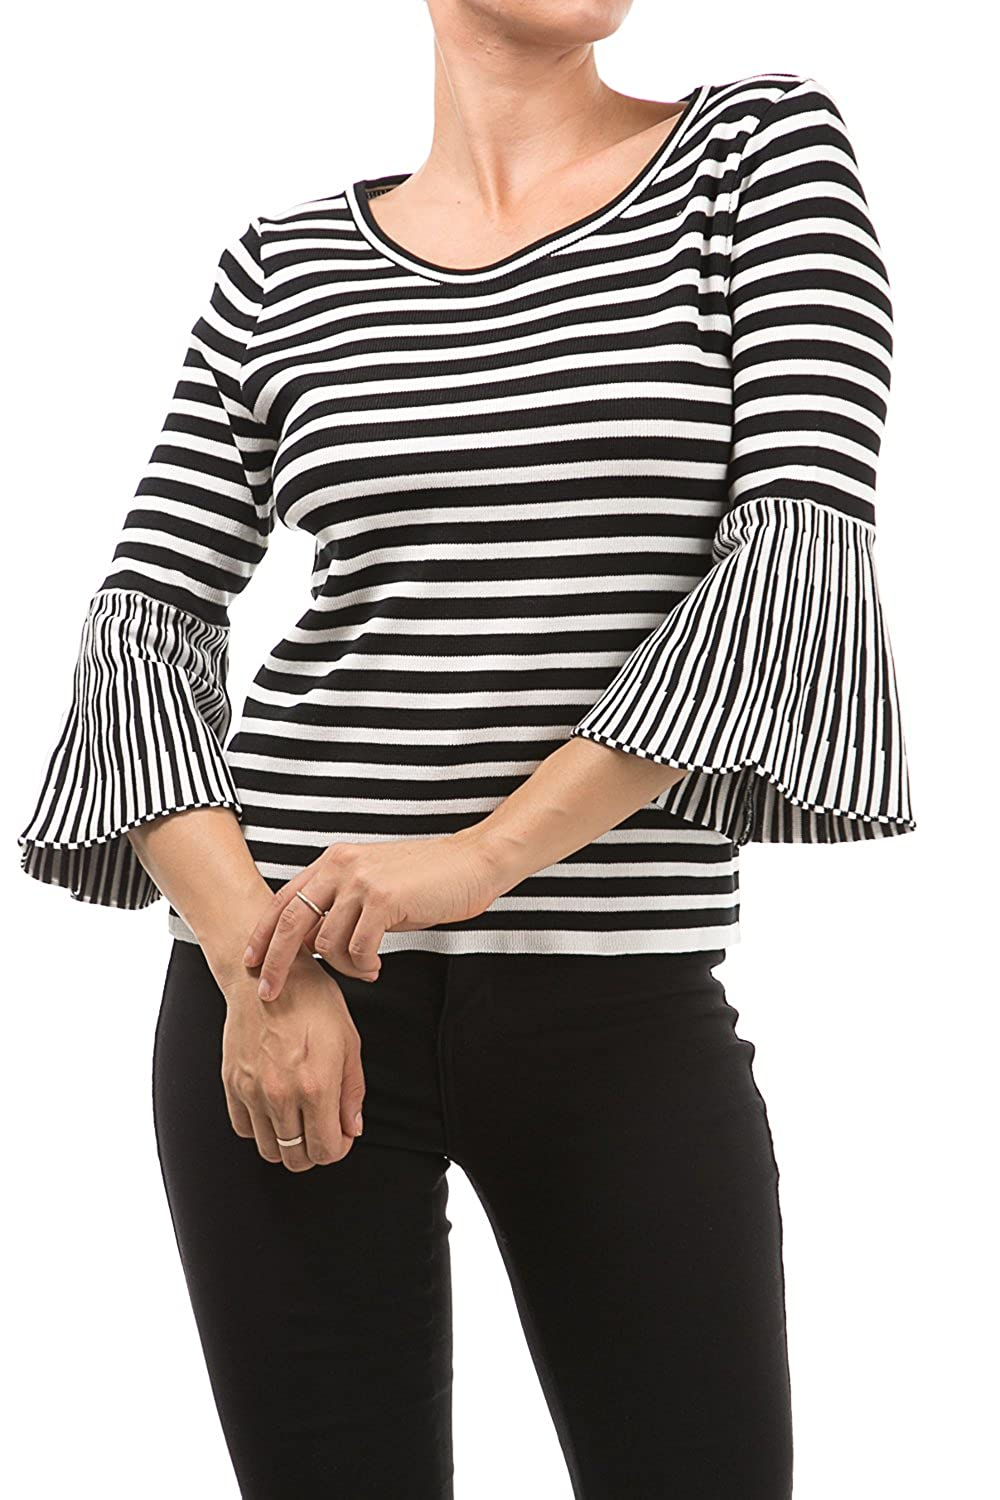 Bangbangusa Women Round Neck Stripes Pull Over Fashion Top With Bell Sleeves